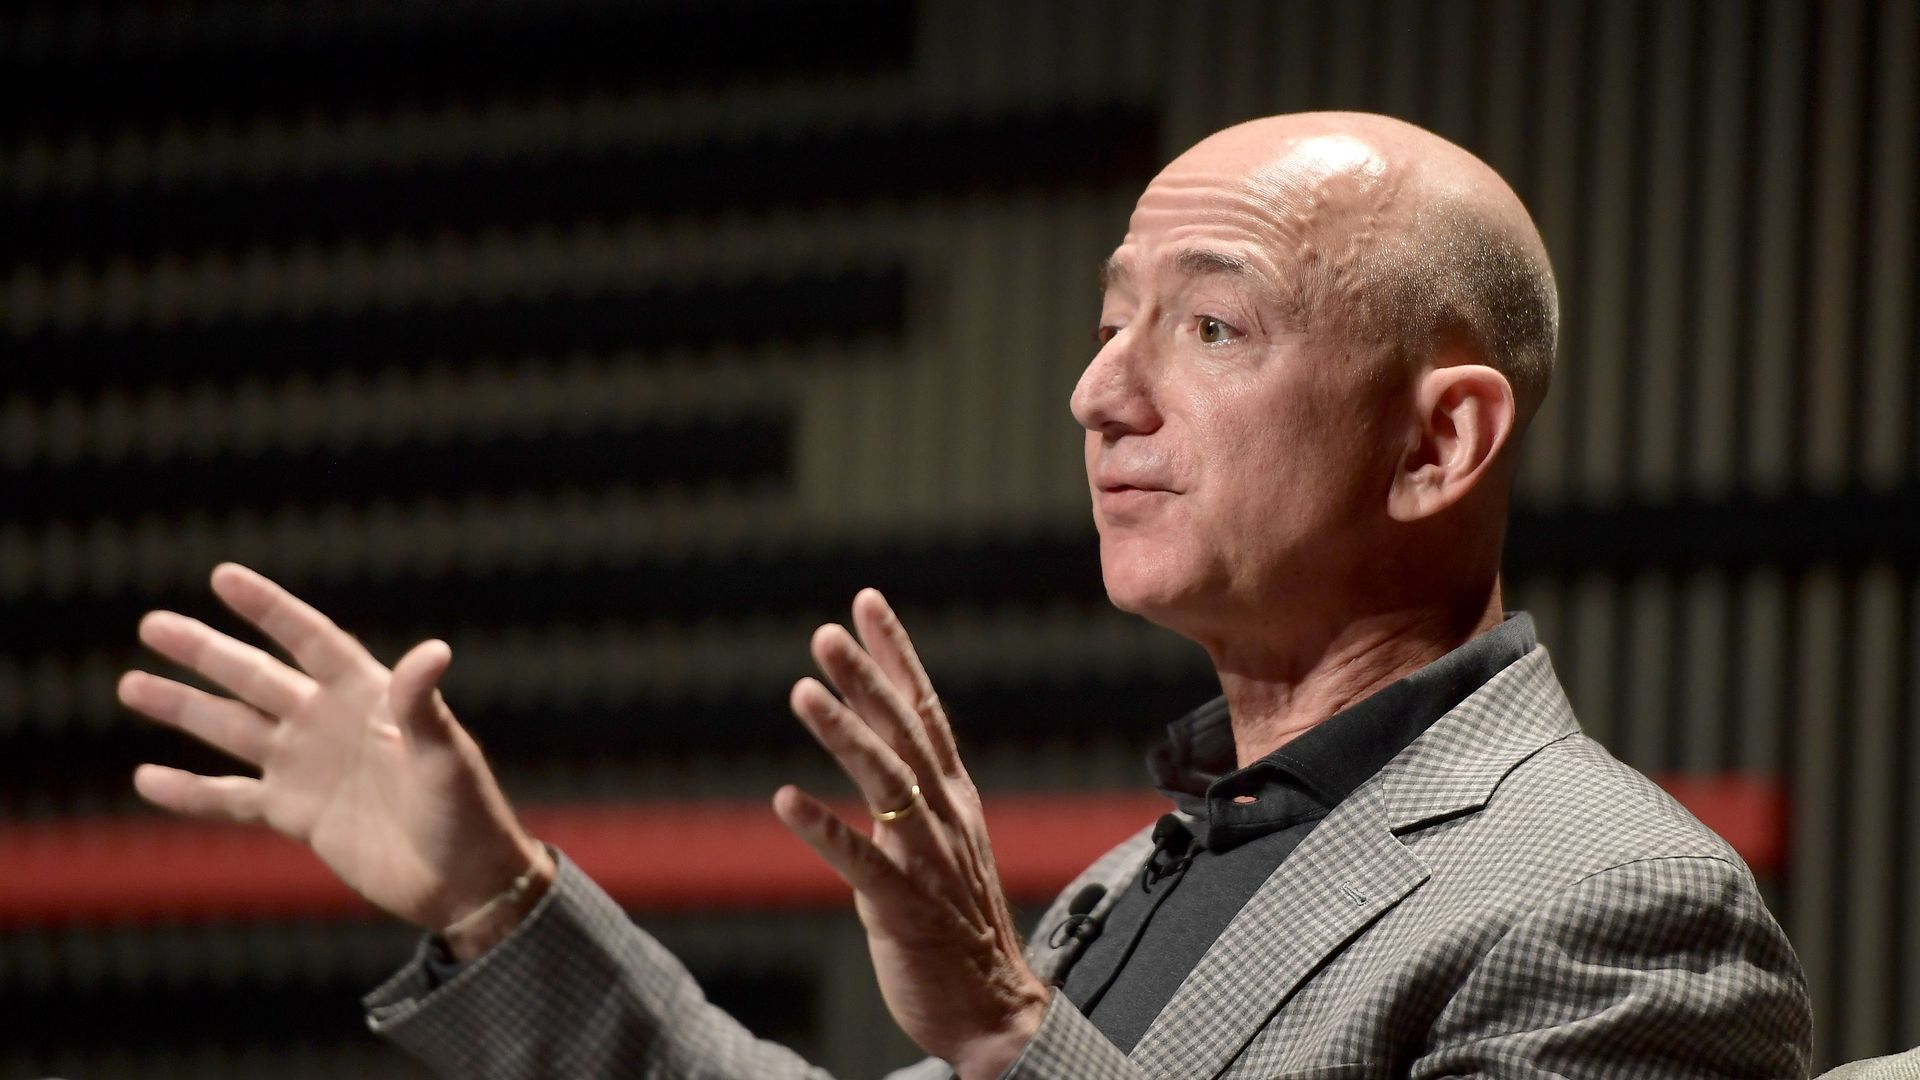 Photo of Jeff Bezos at Wired 25 event in SF.